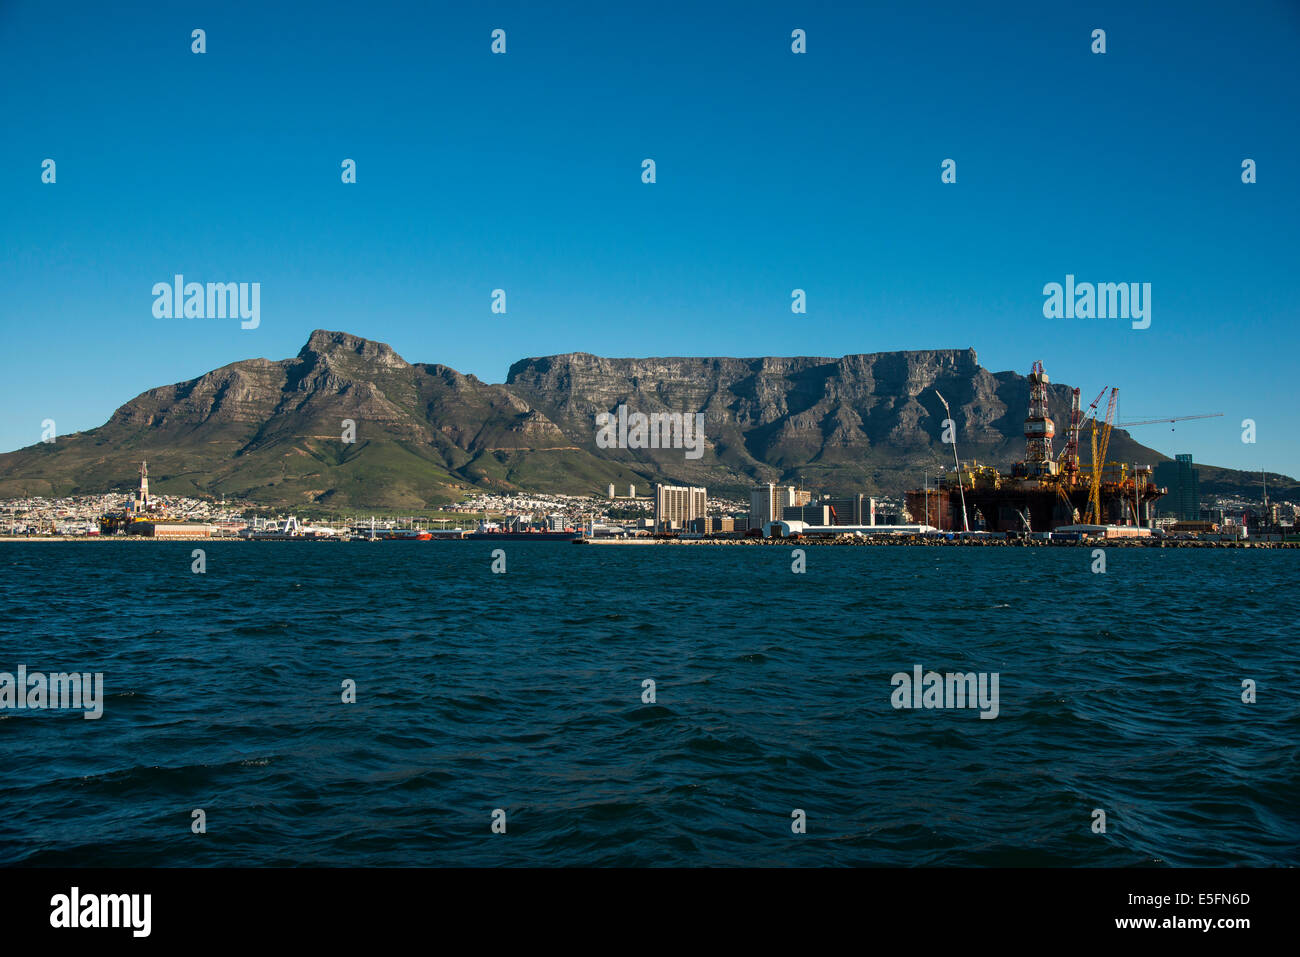 Table Mountain con Città del Capo, Western Cape, Sud Africa Immagini Stock